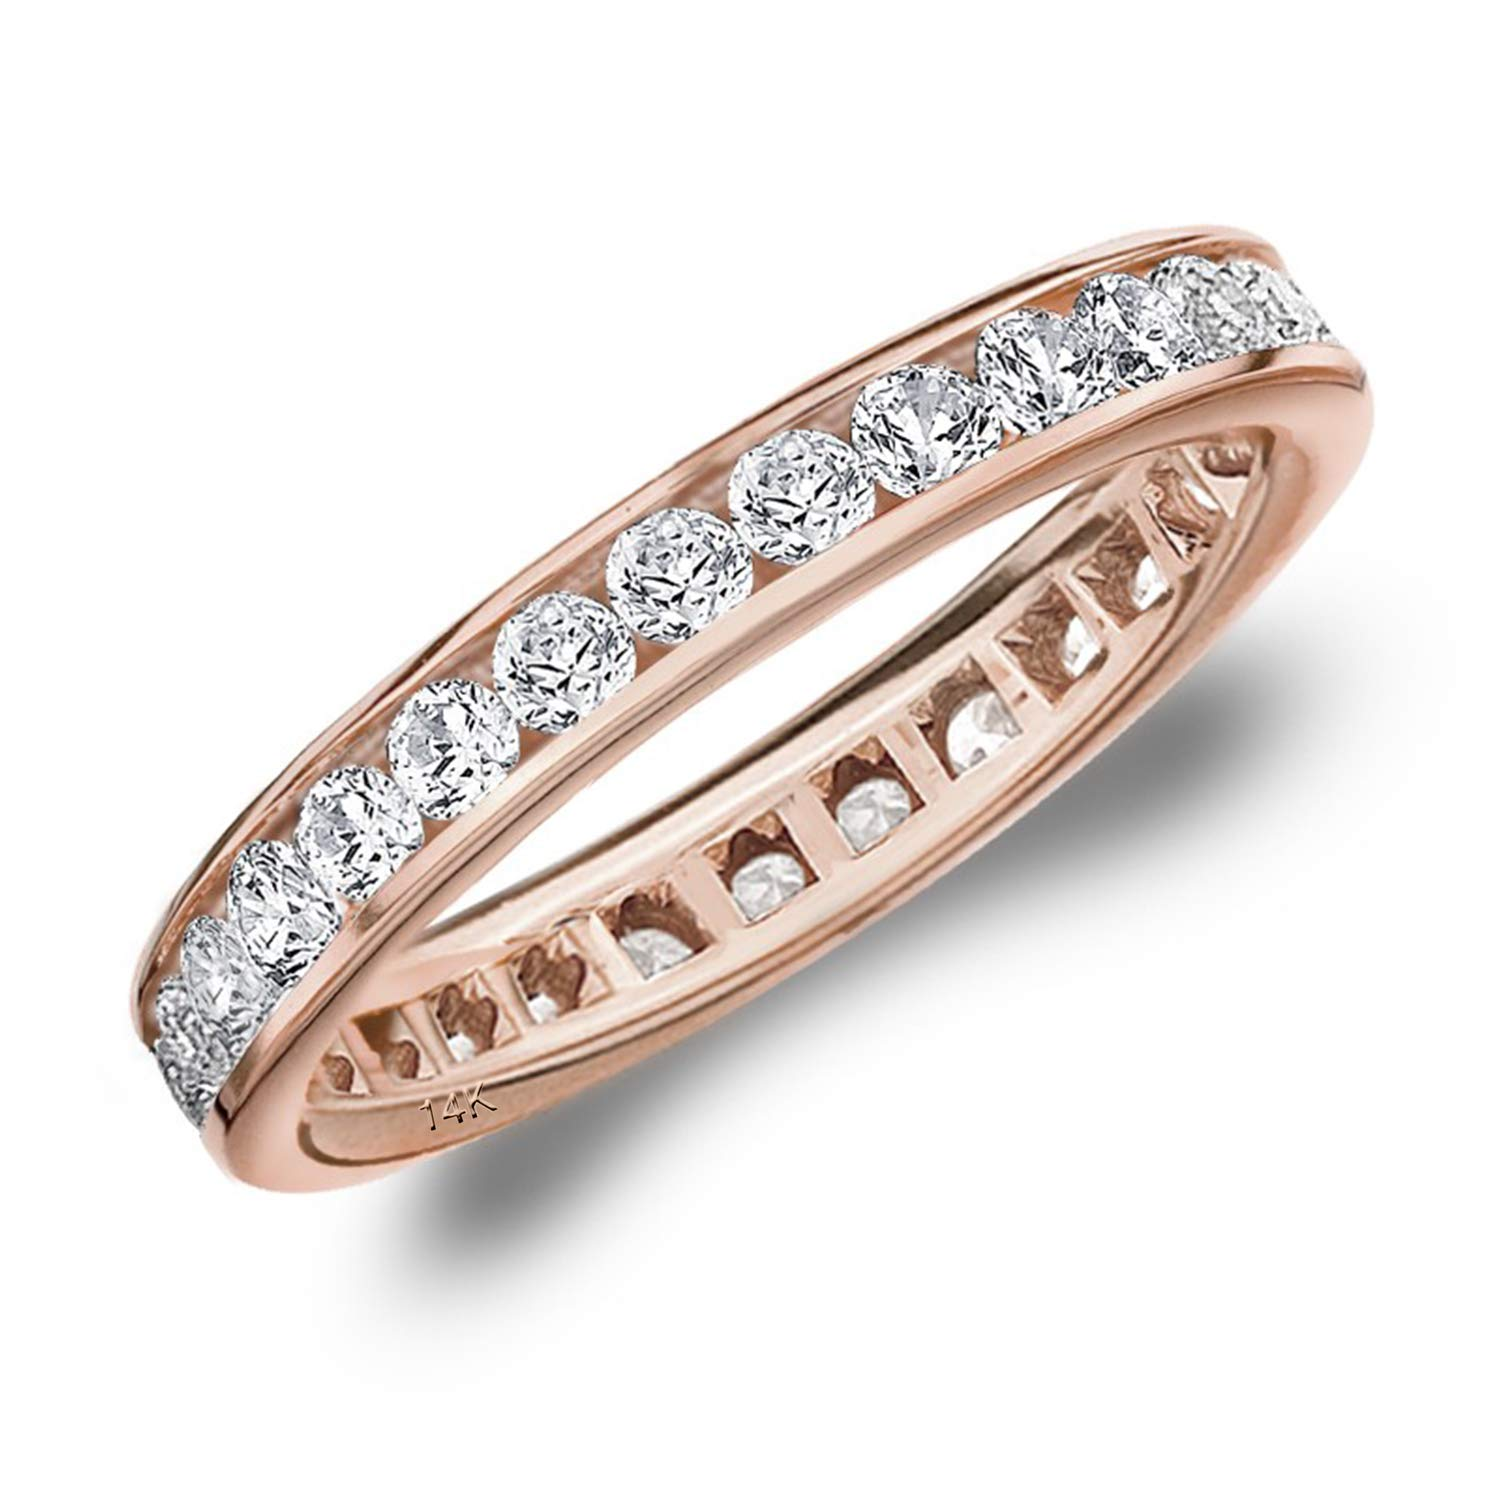 1CT Classic Channel Set Diamond Eternity Ring in 14K Rose Gold - Finger Size 8